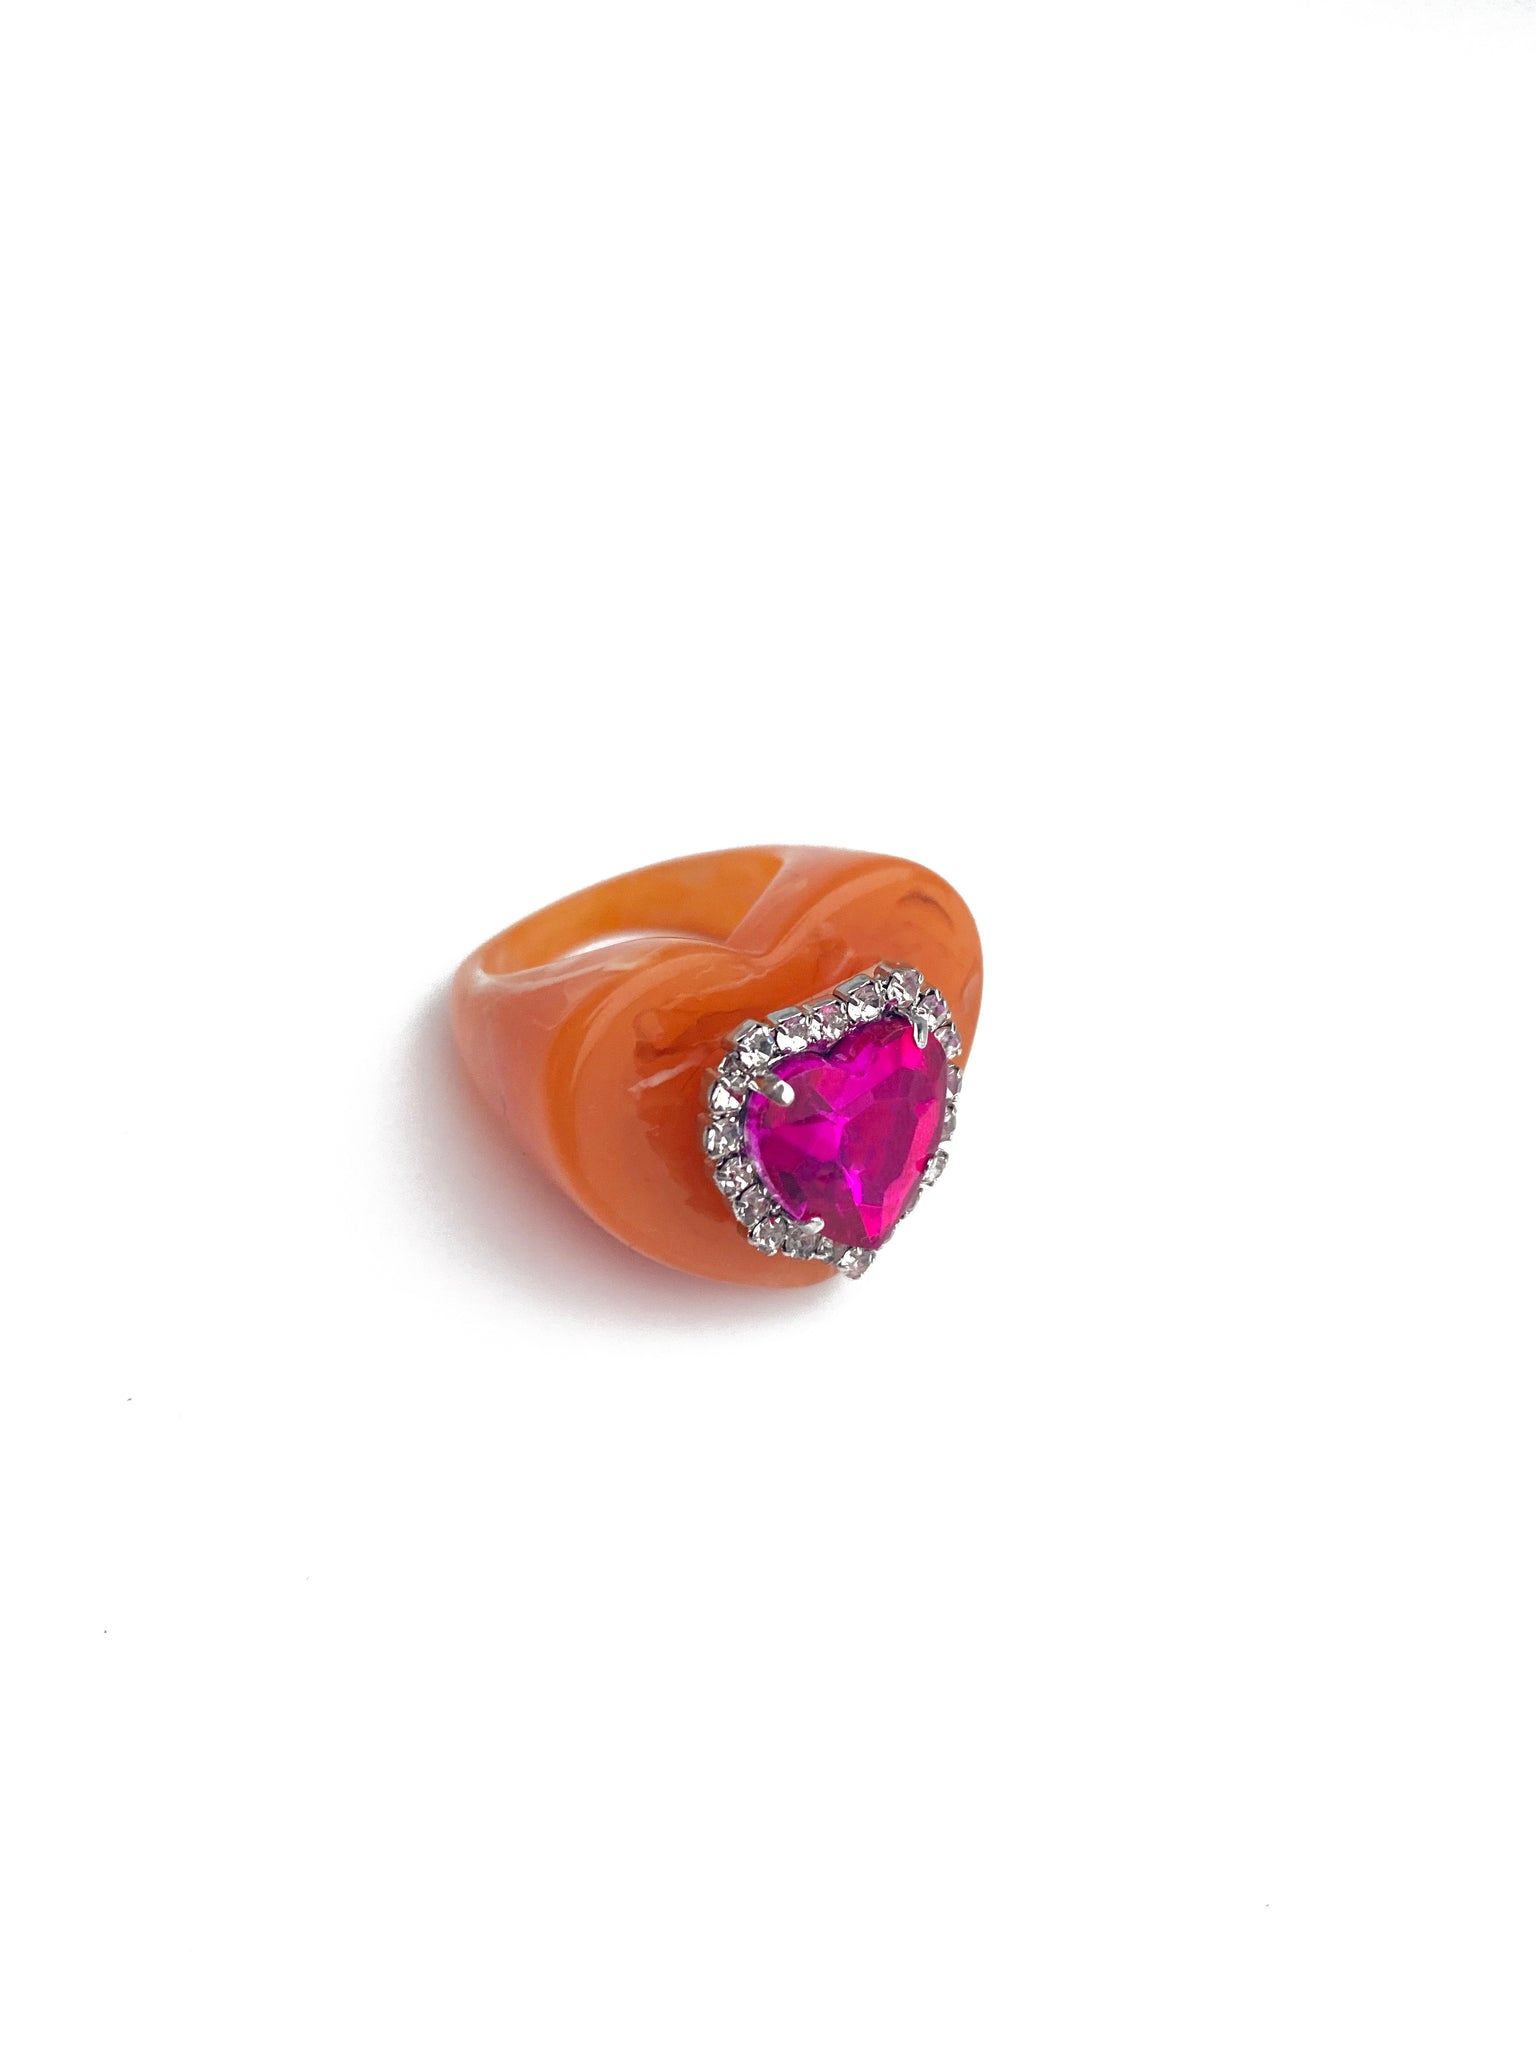 Orange heart-shaped resin ring with heart-shaped pink faux diamond gem in centre and clear diamante gems all around the centre gem.